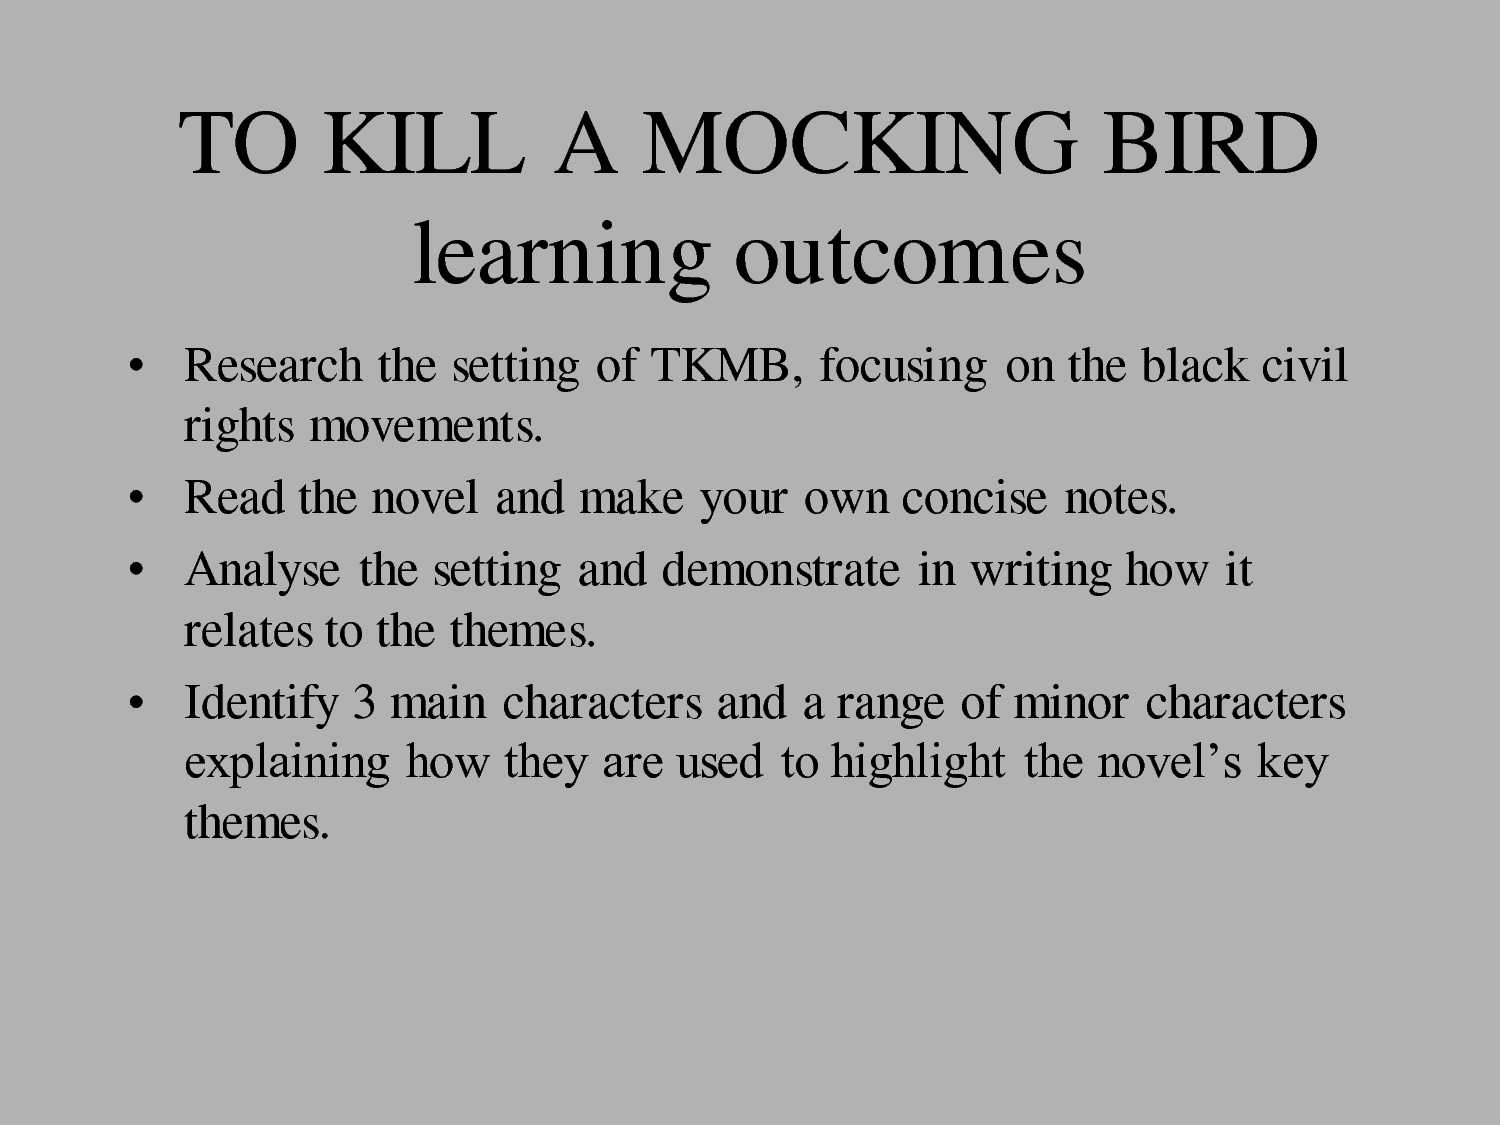 to kill a mockingbird atticus essay conclusion As a parent in to kill a mockingbird atticus other essays and articles on more literary topics can be found in the literature archives at articlemyriad.